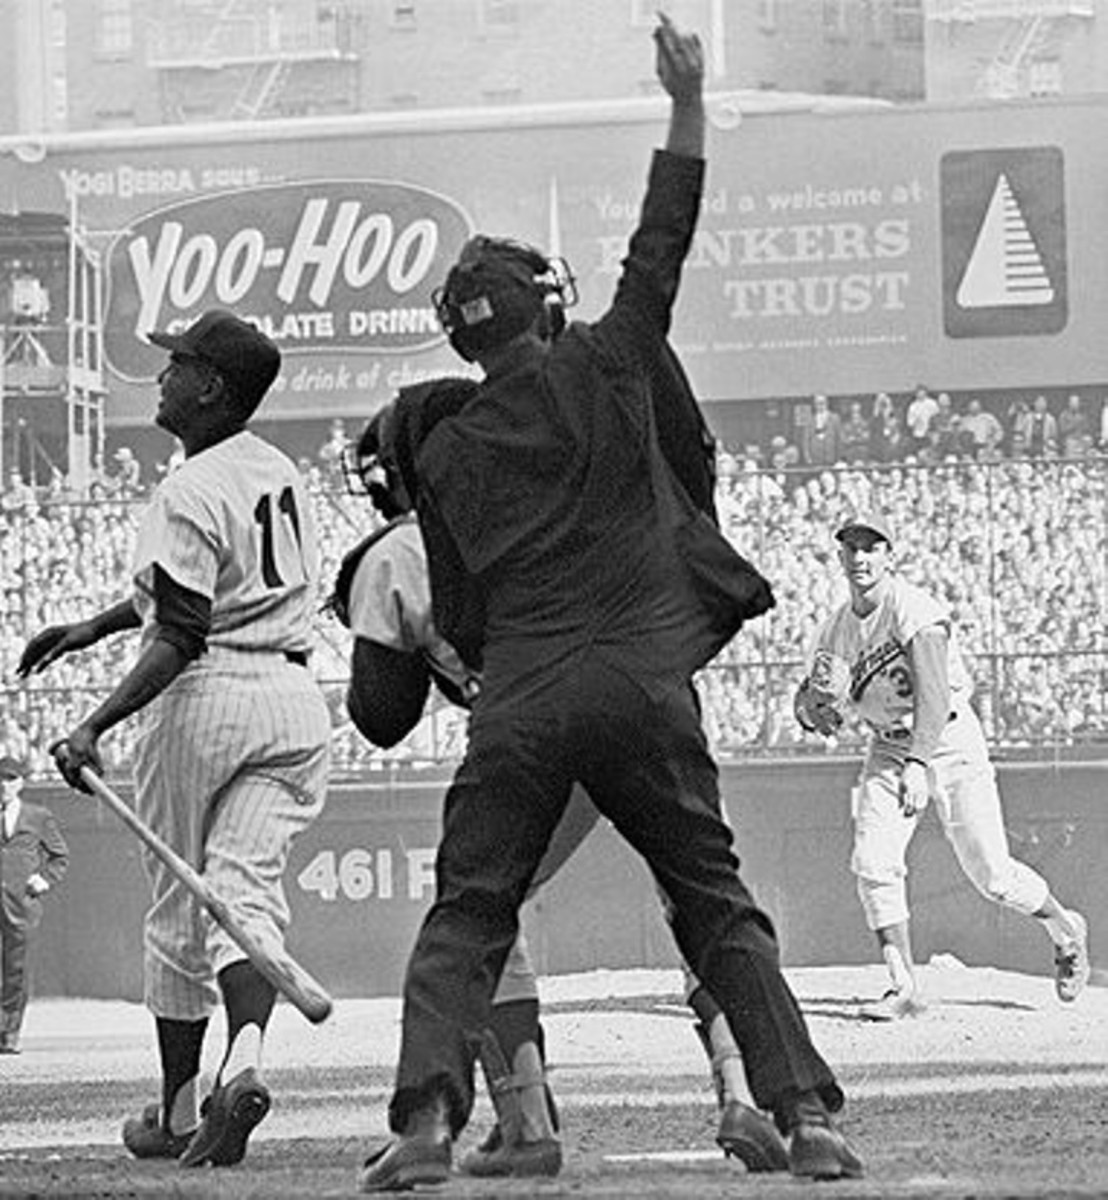 Koufax gets Hector Lopez in the 5th inning.